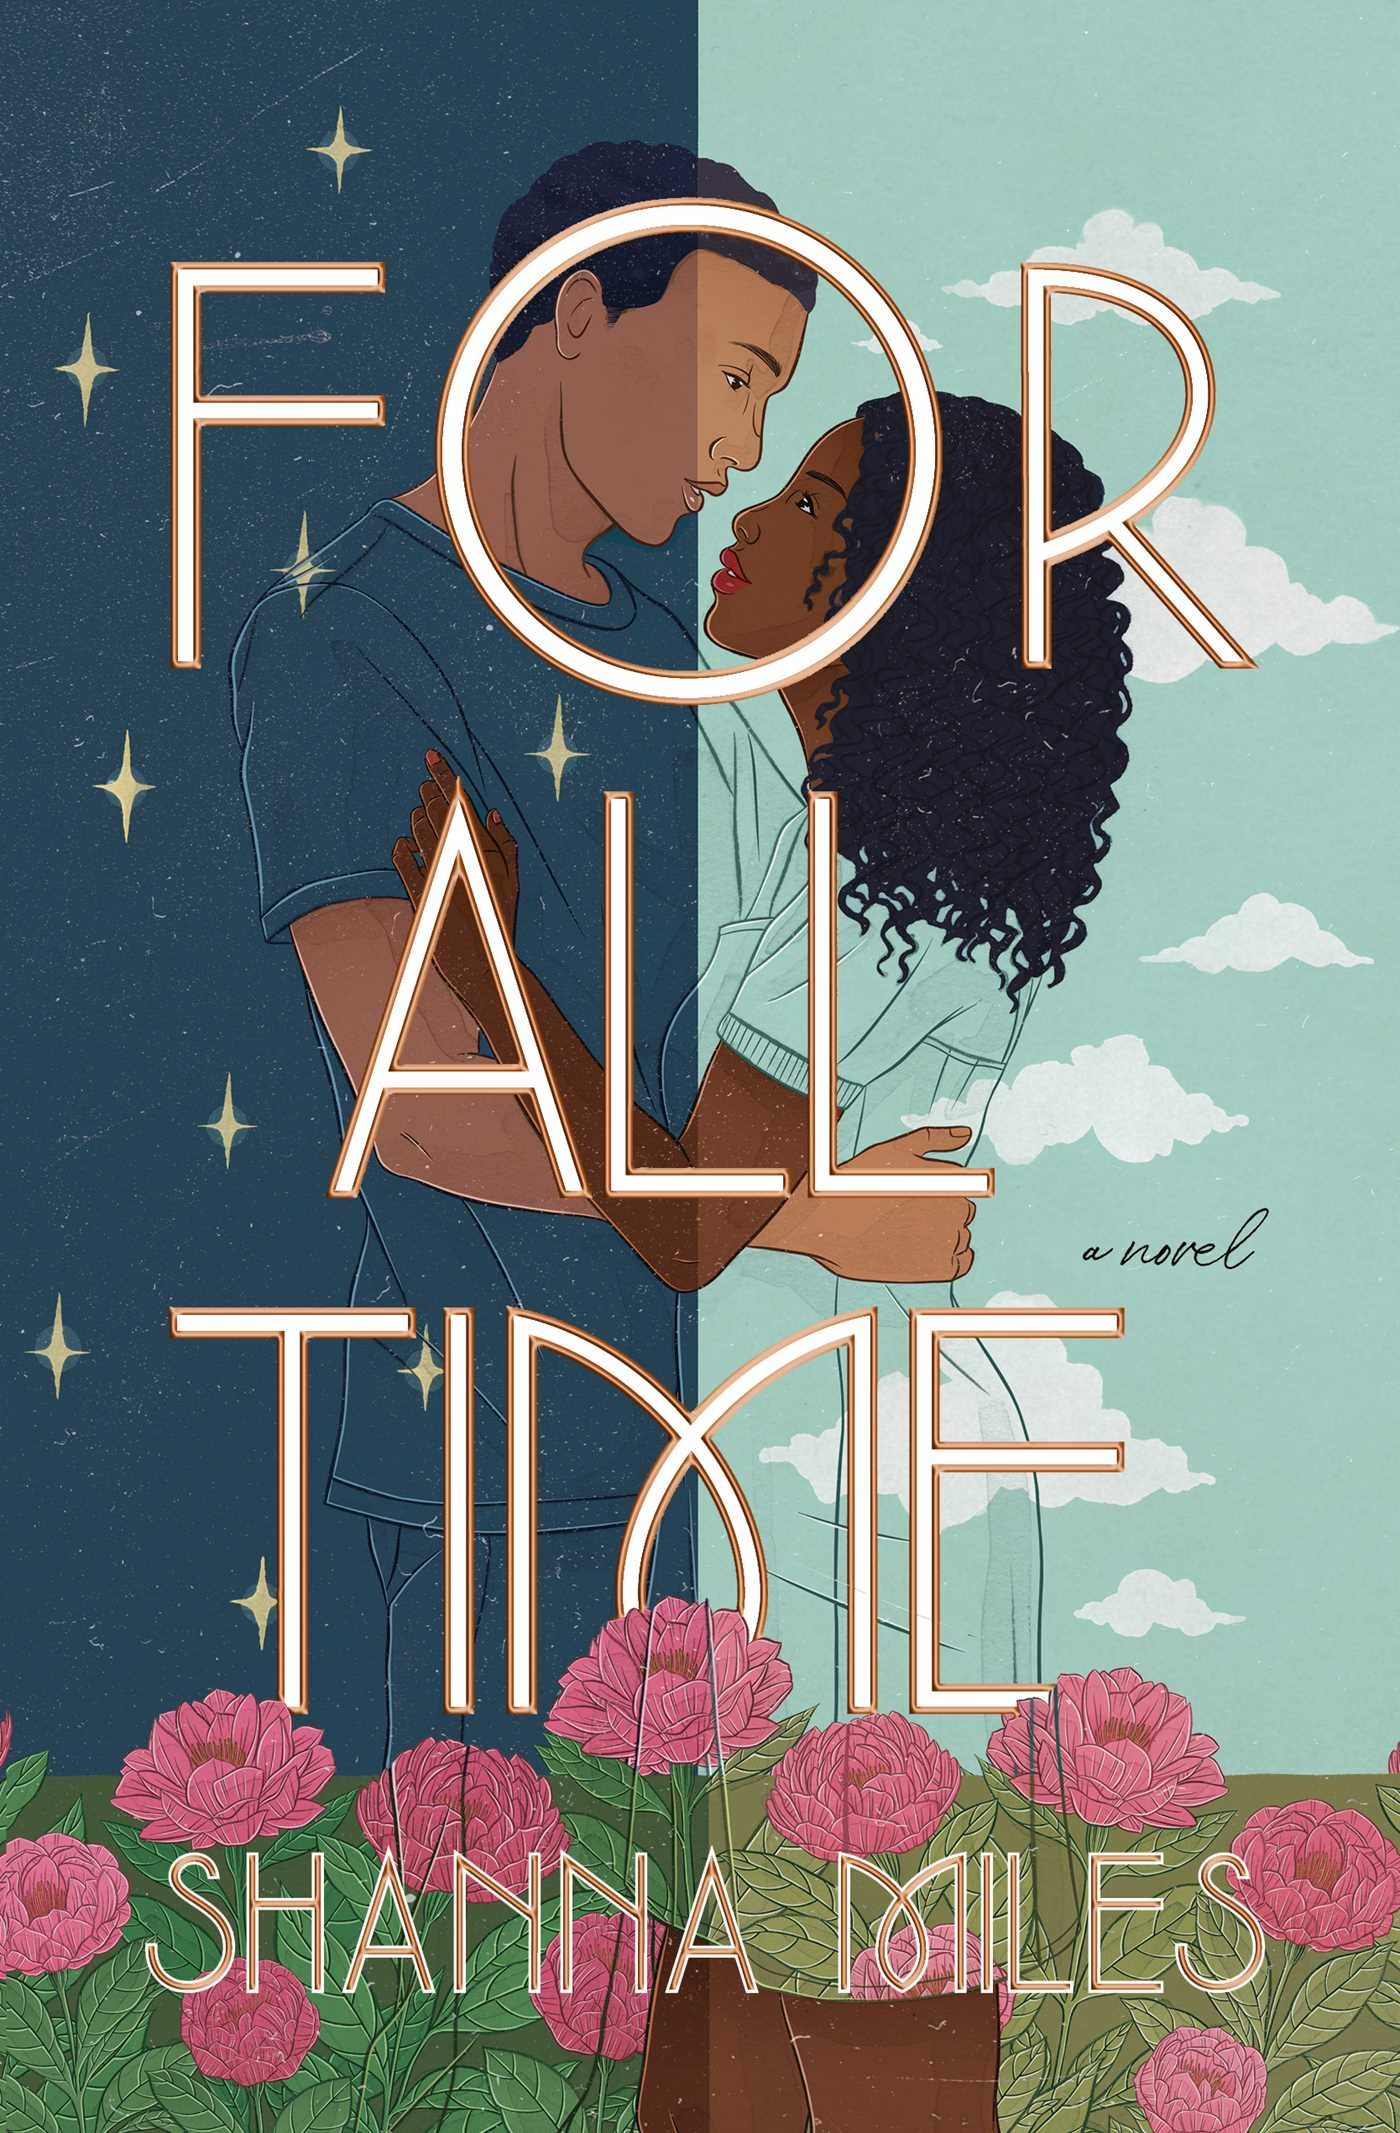 When Will For All Time By Shanna Miles Release? 2021 Debut Releases